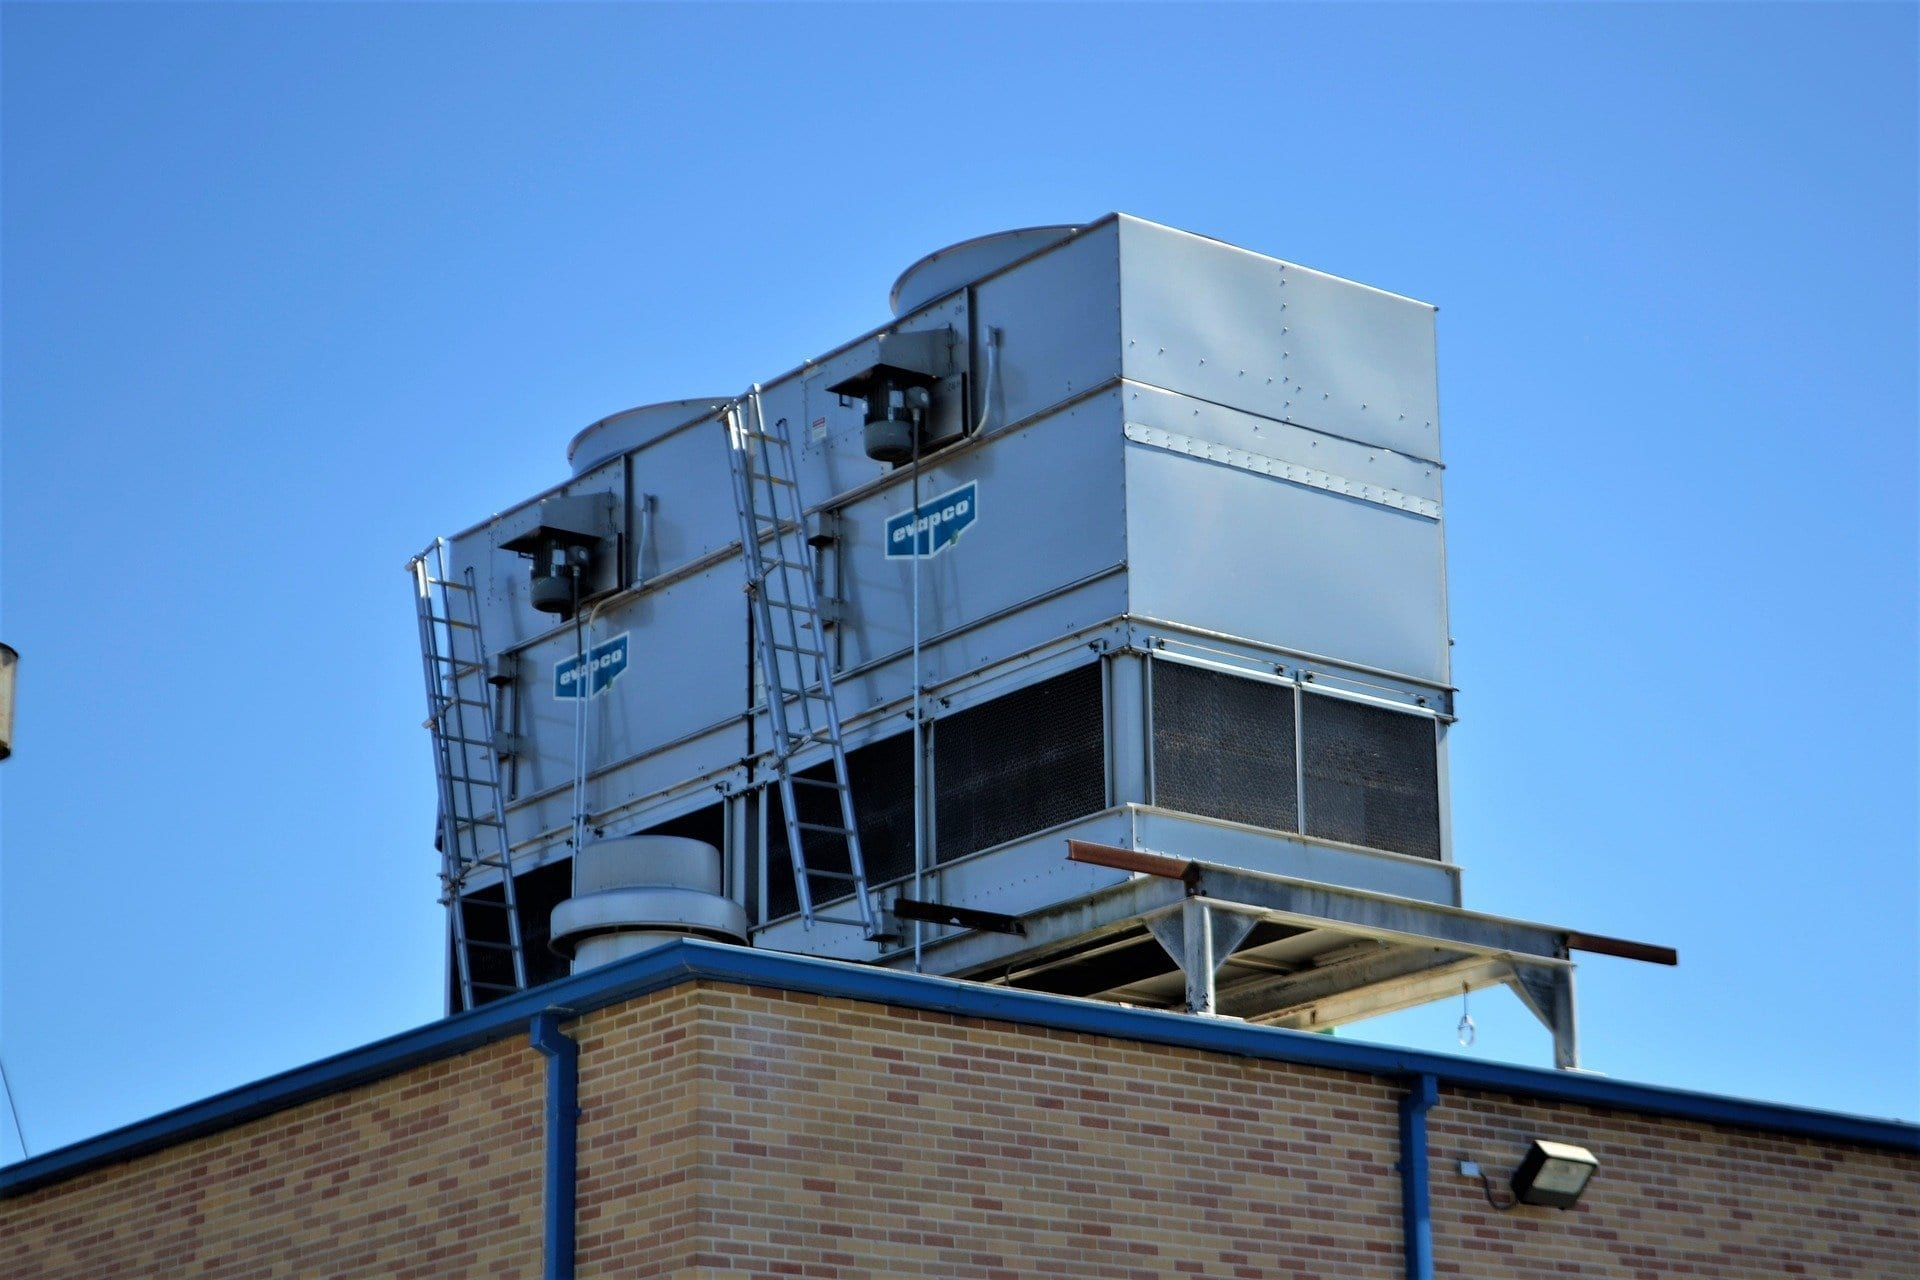 Rooftop Commercial HVAC